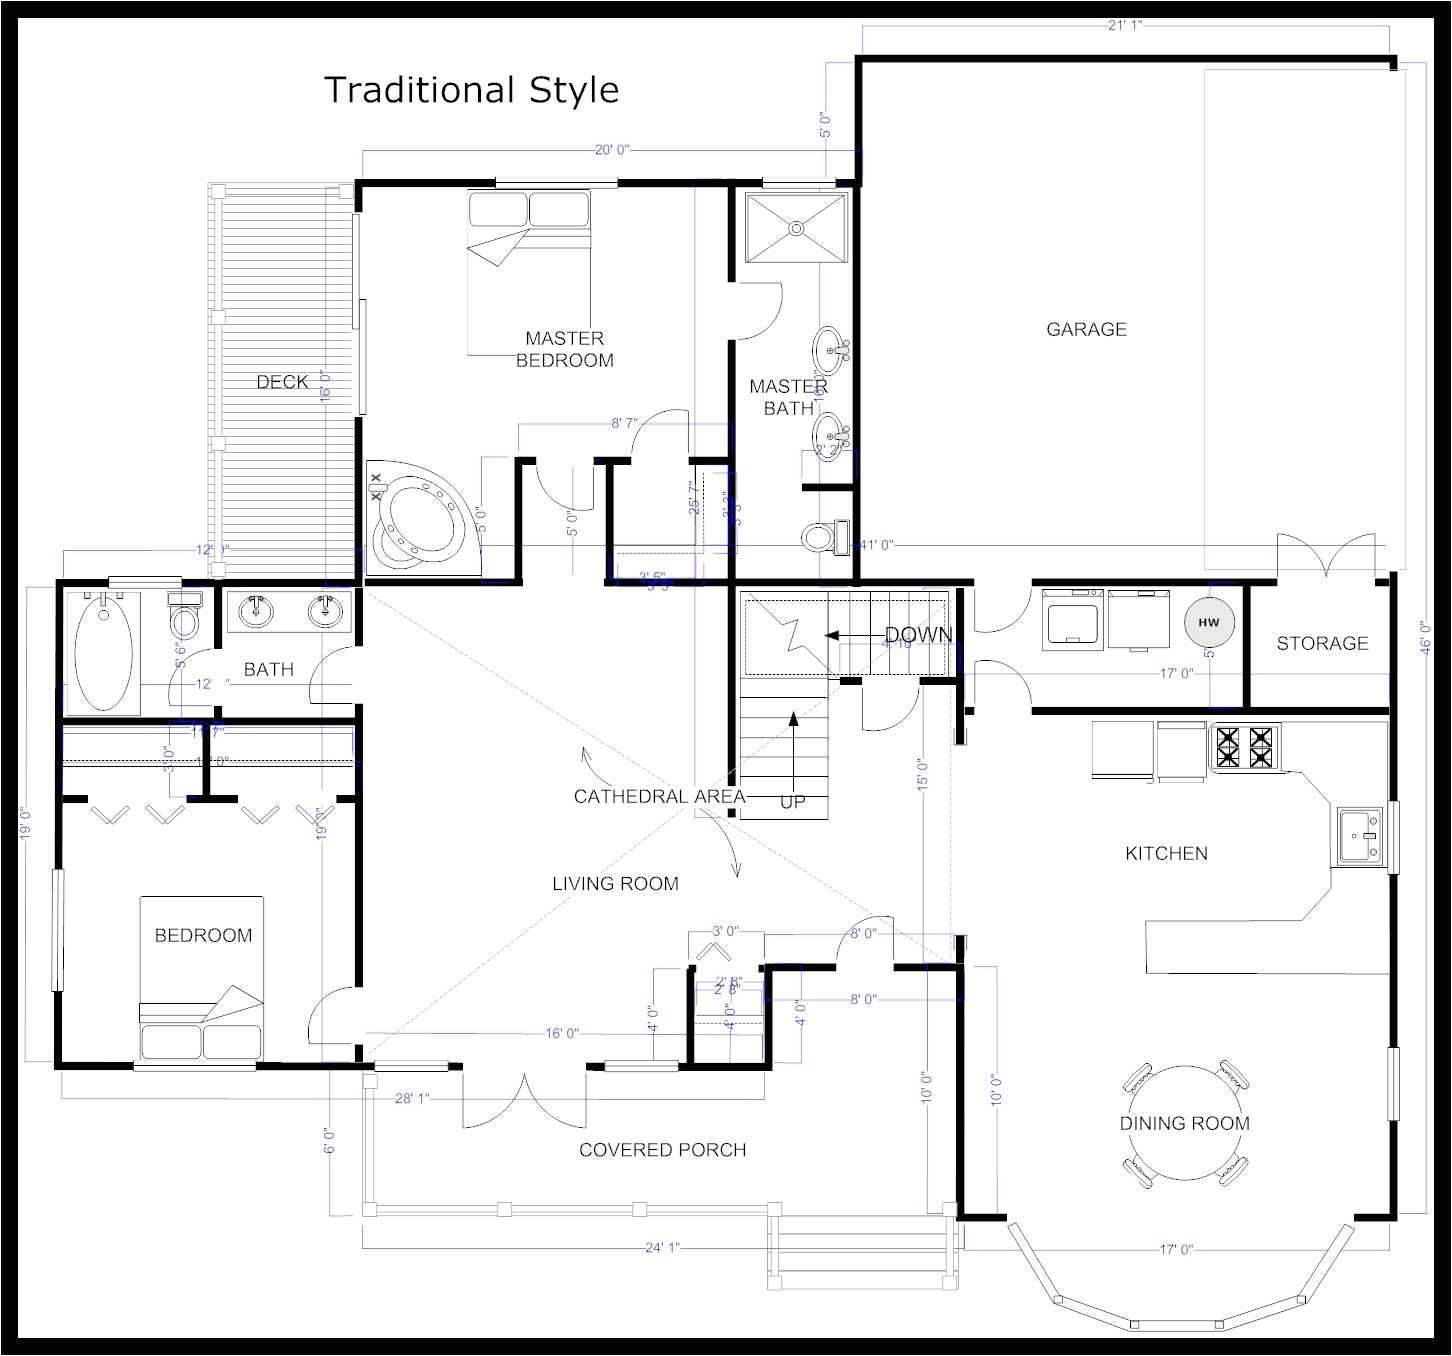 house plan drawing 2 bedroom ideas floor plans inspirational home with traditional style and of attractive template website tool 2018